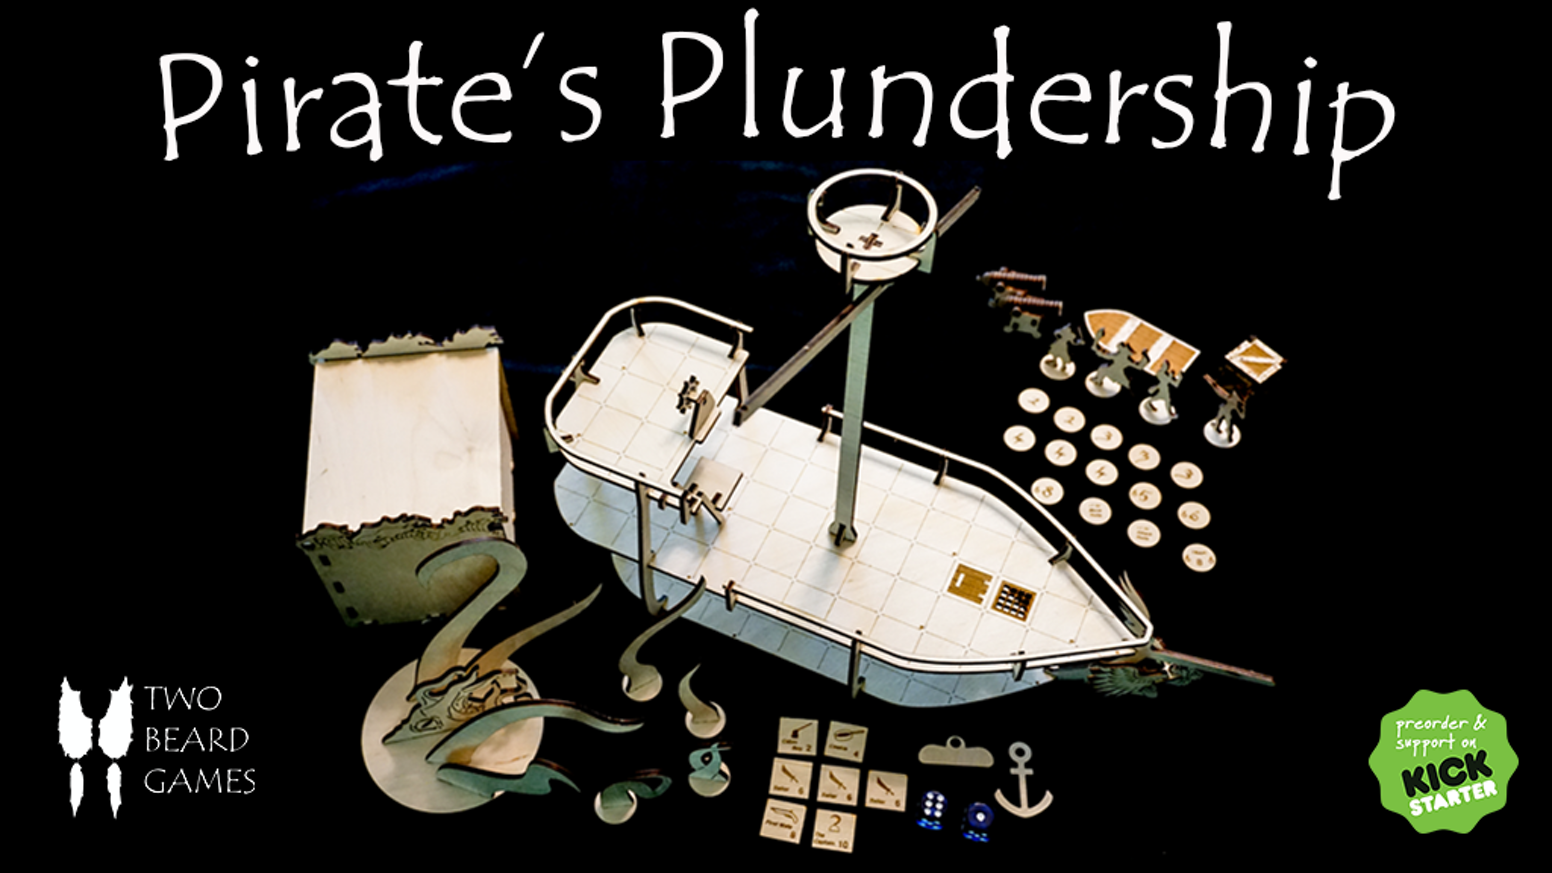 Build your own Pirate's Plundership - A family-friendly board game and tabletop RPG gaming accessory!